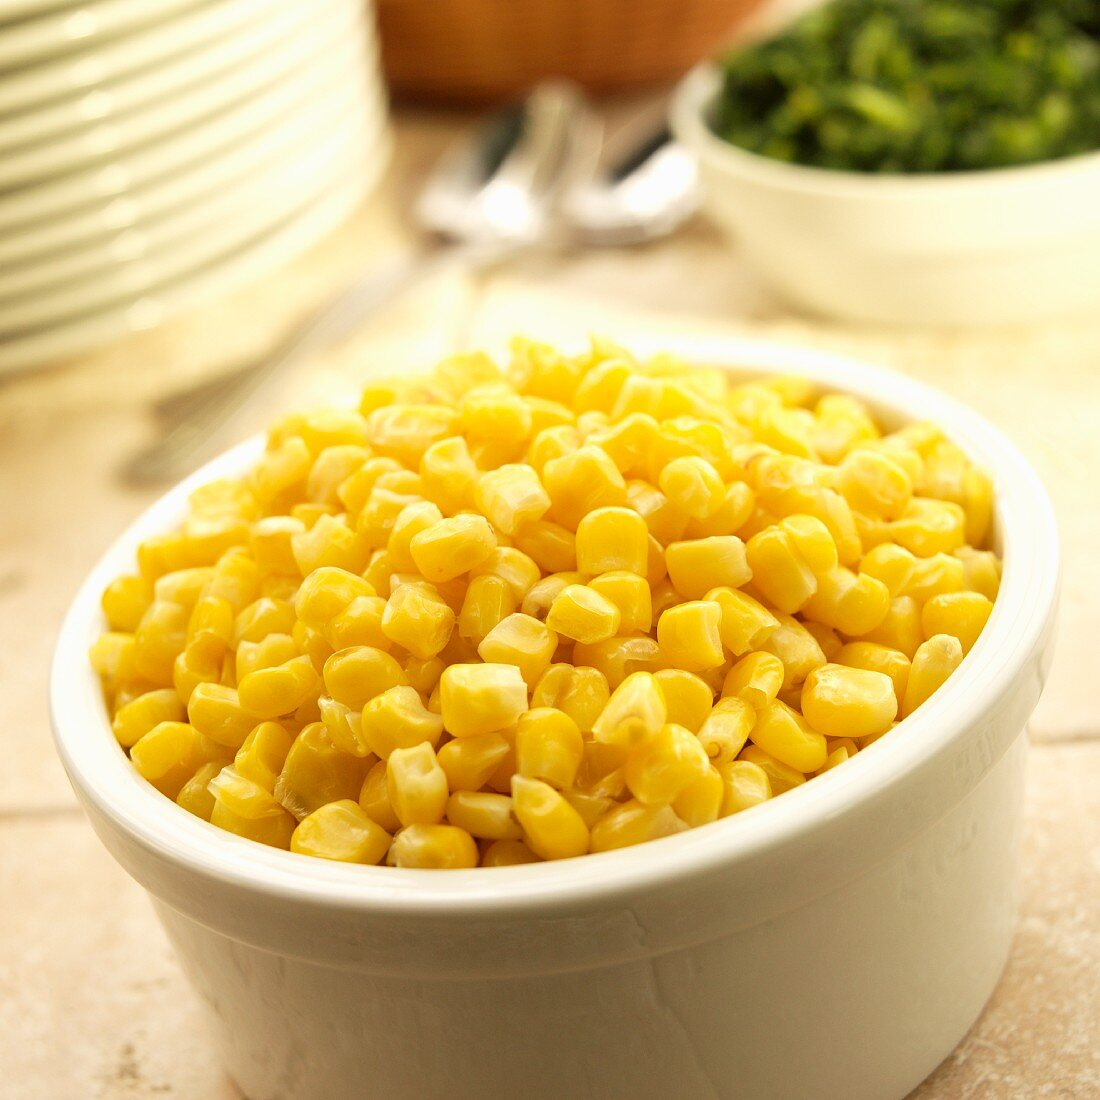 A bowl of sweetcorn with a bowl of spinach and a stack of plates in the background